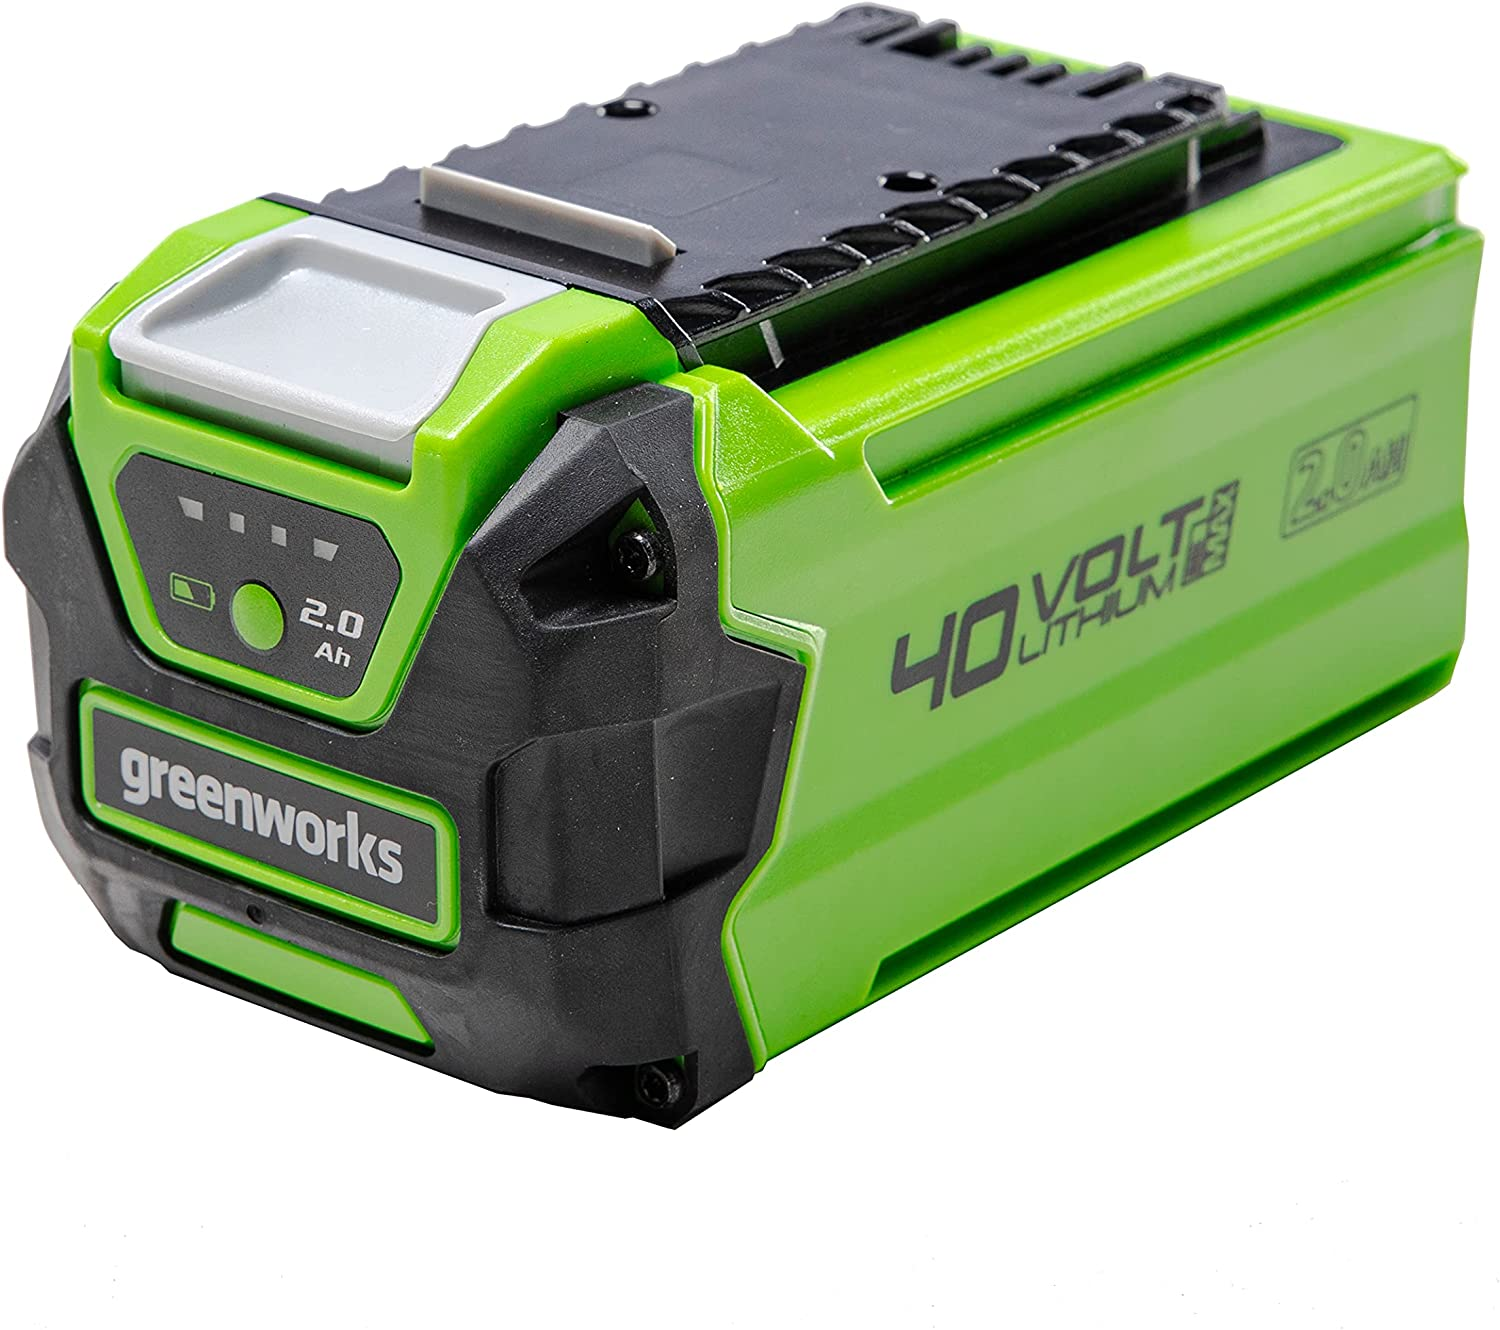 Greenworks 40V 2.0Ah Lithium-Ion Regular discount Battery Year-end gift